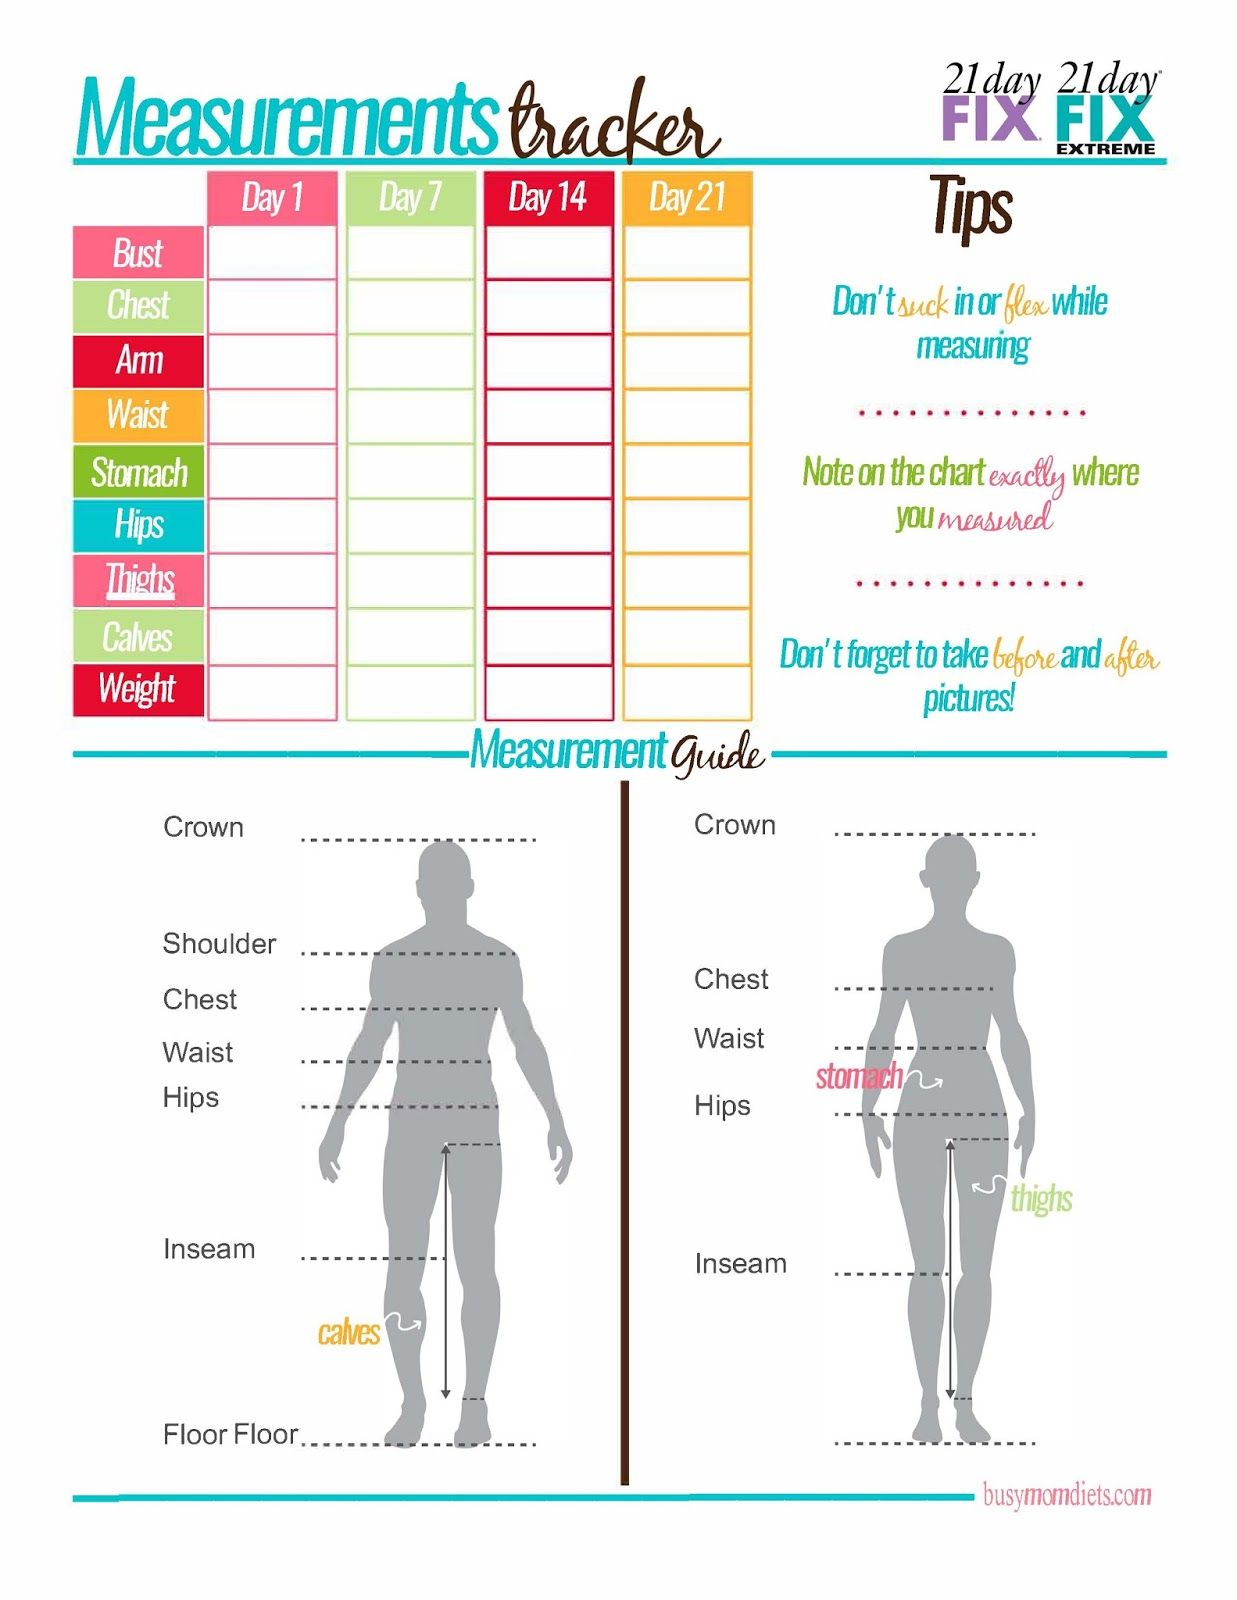 Related image body measurement tracker fitness fun health motivation april also let   get physical pinterest day fix days rh